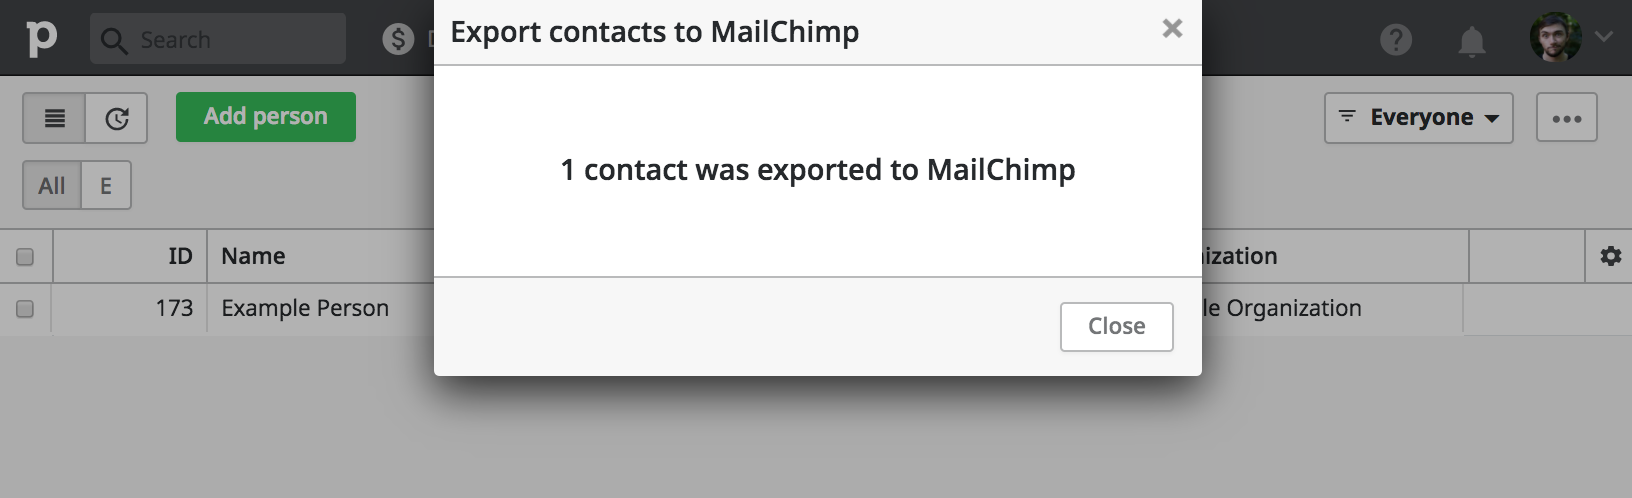 1_contact_was_exported_to_mailchimp.png